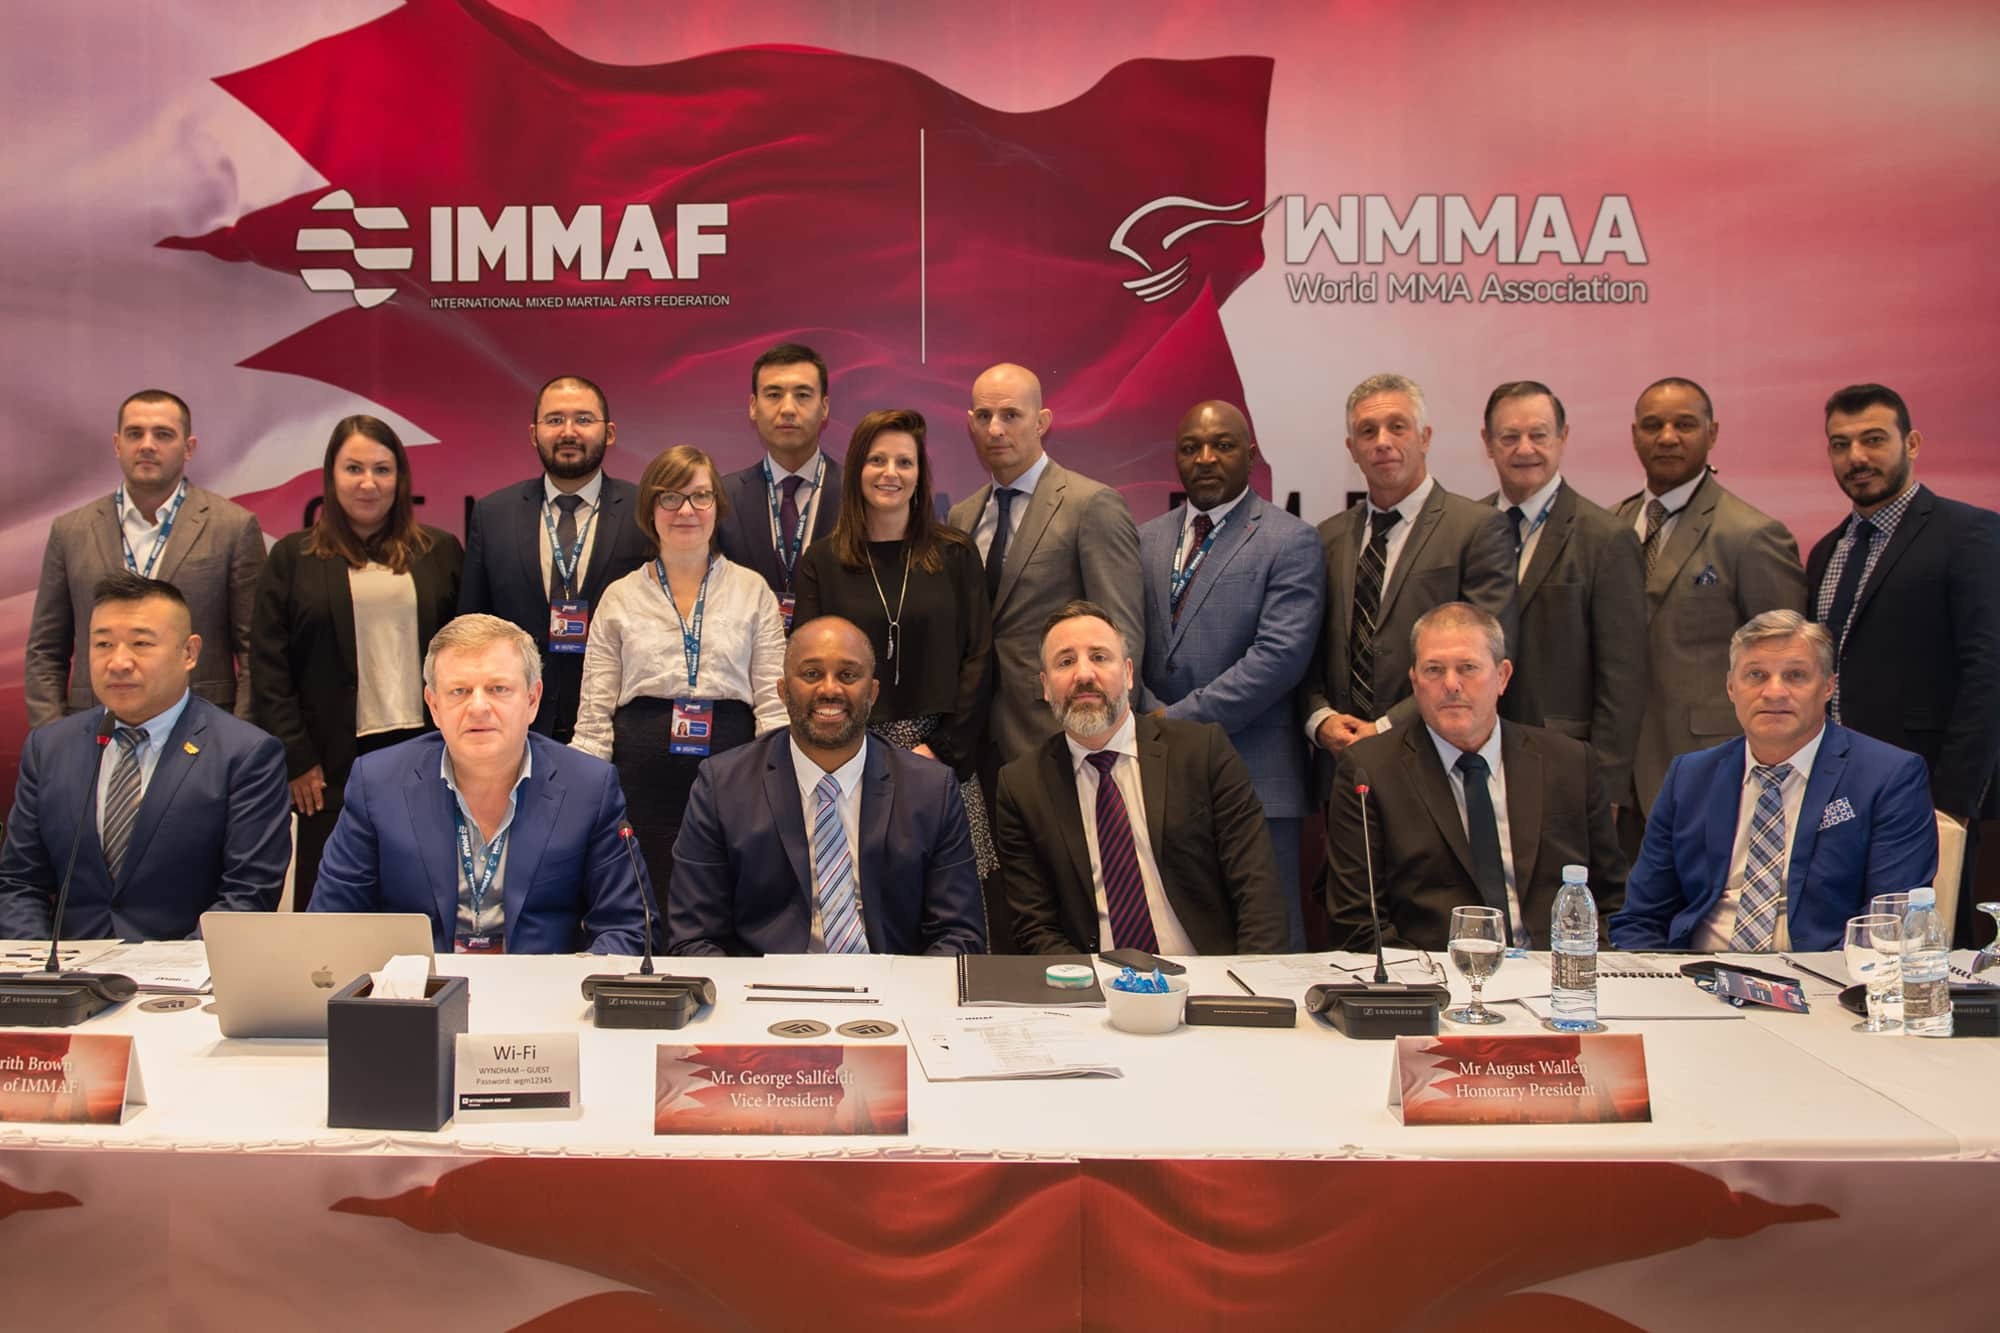 IMMAF Board set to participate in good governance training